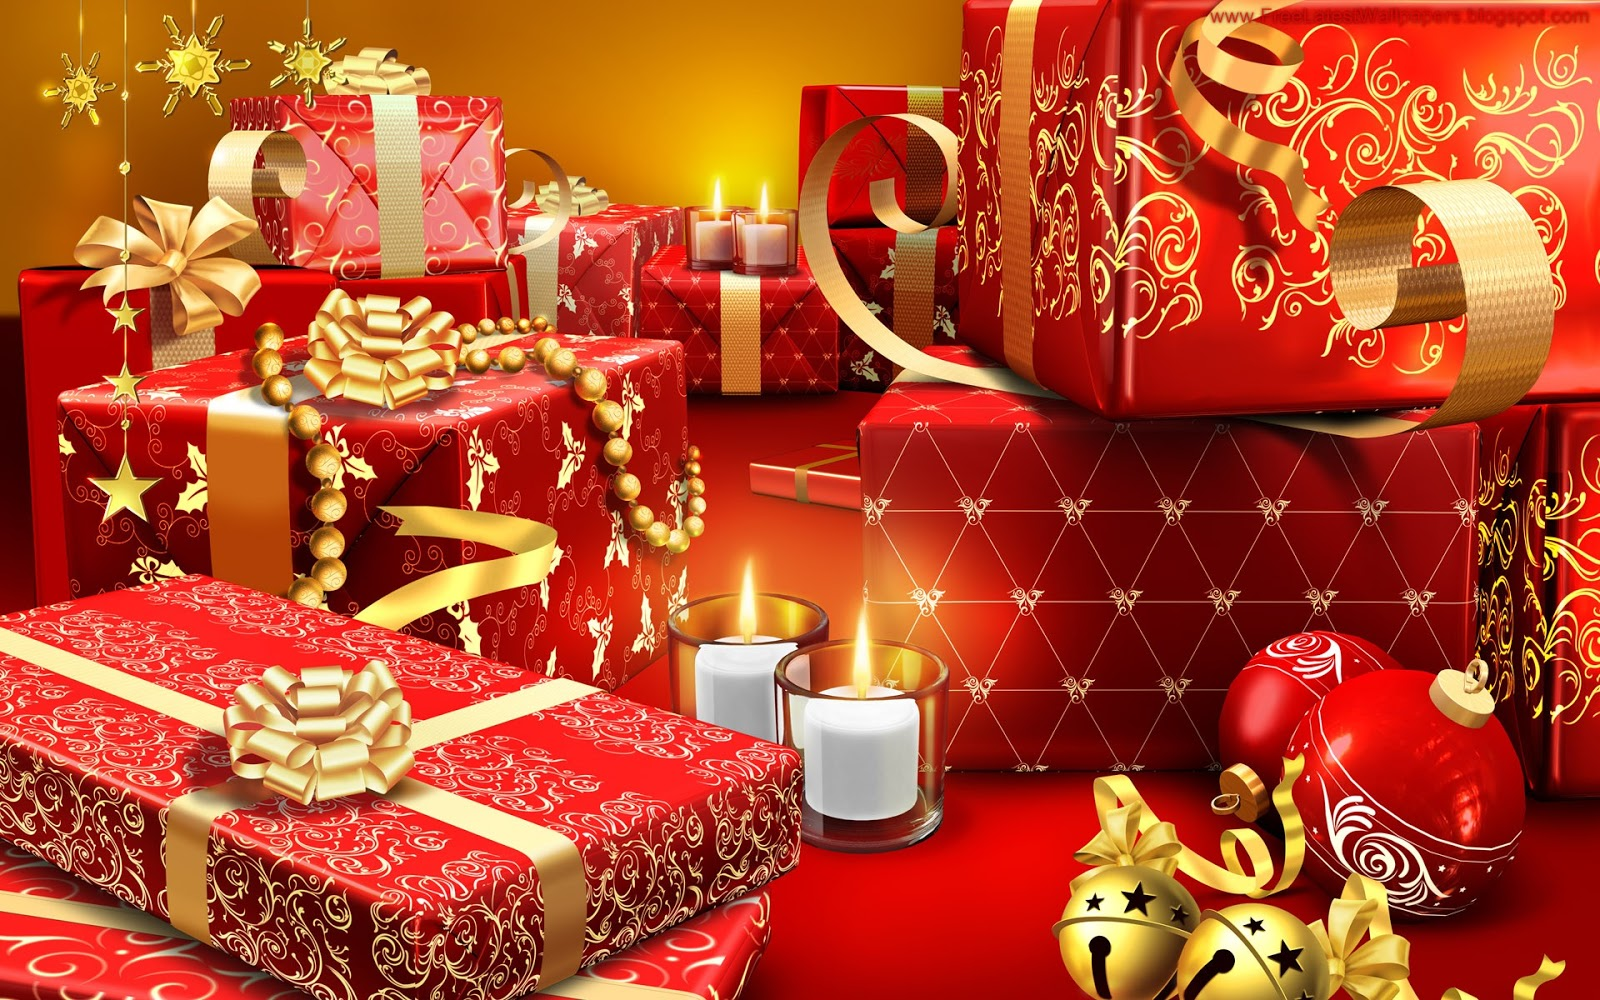 merry christmas images 2017, hd pictures, wallpapers, photos ~ merry